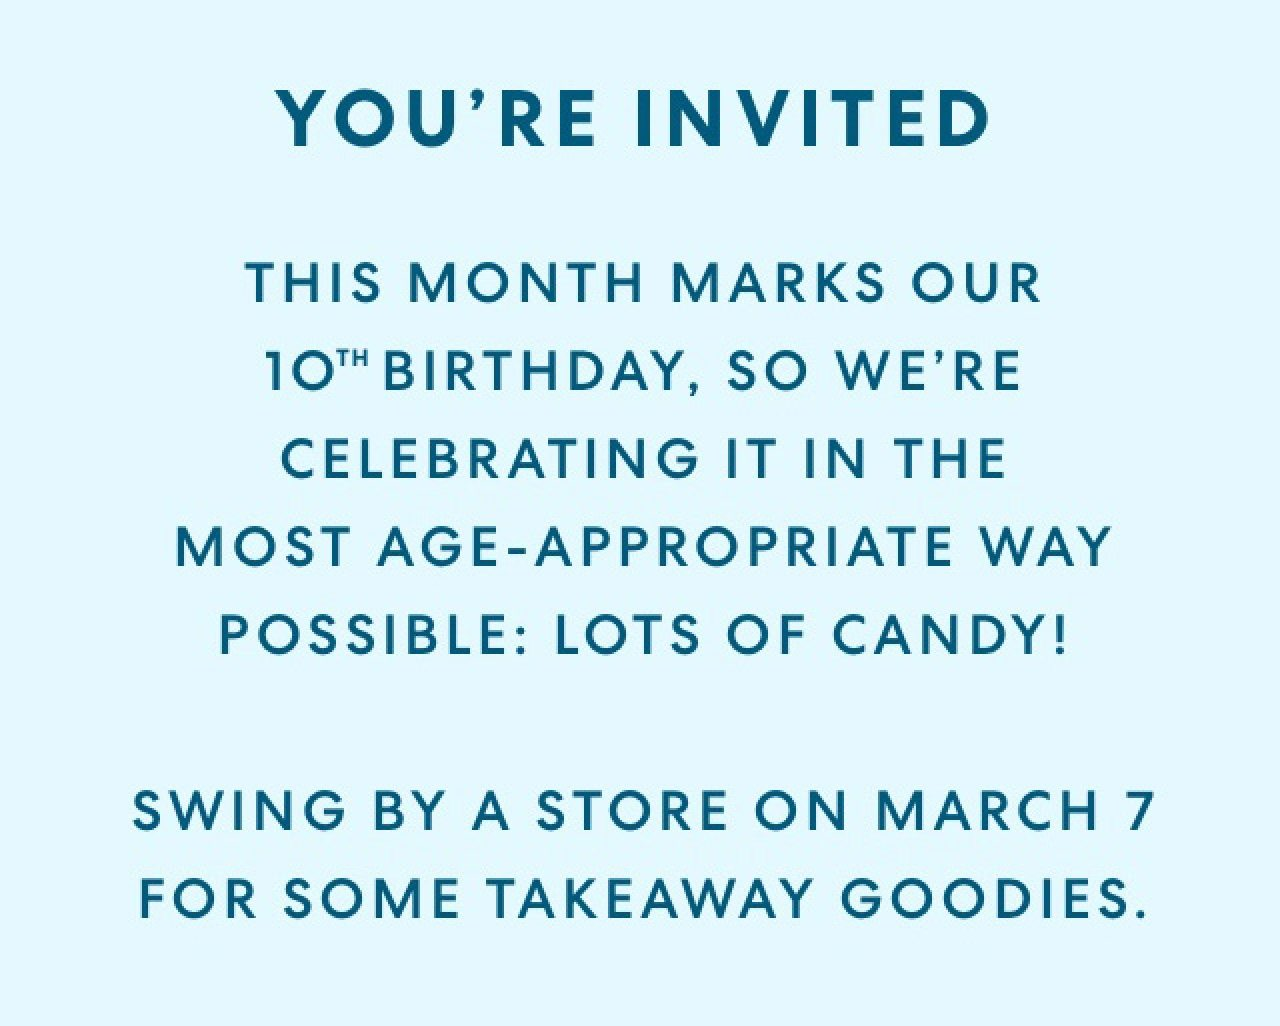 Swing by a store on March 7